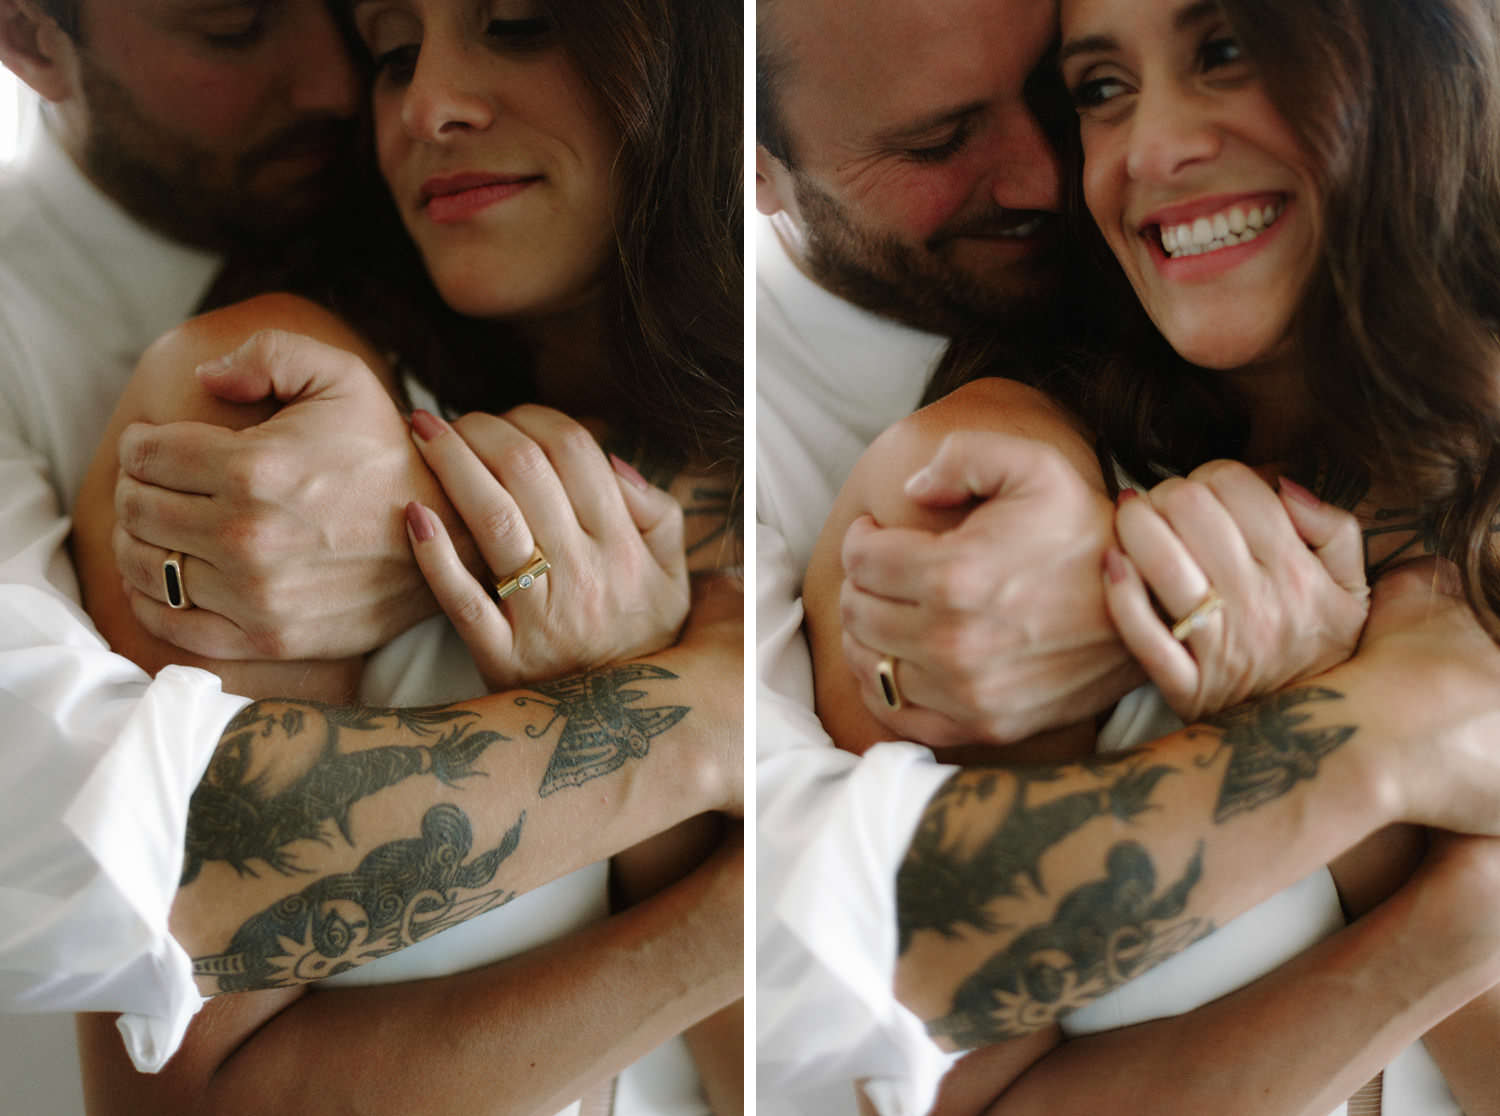 tattooed married couple wearing karen la wedding bands